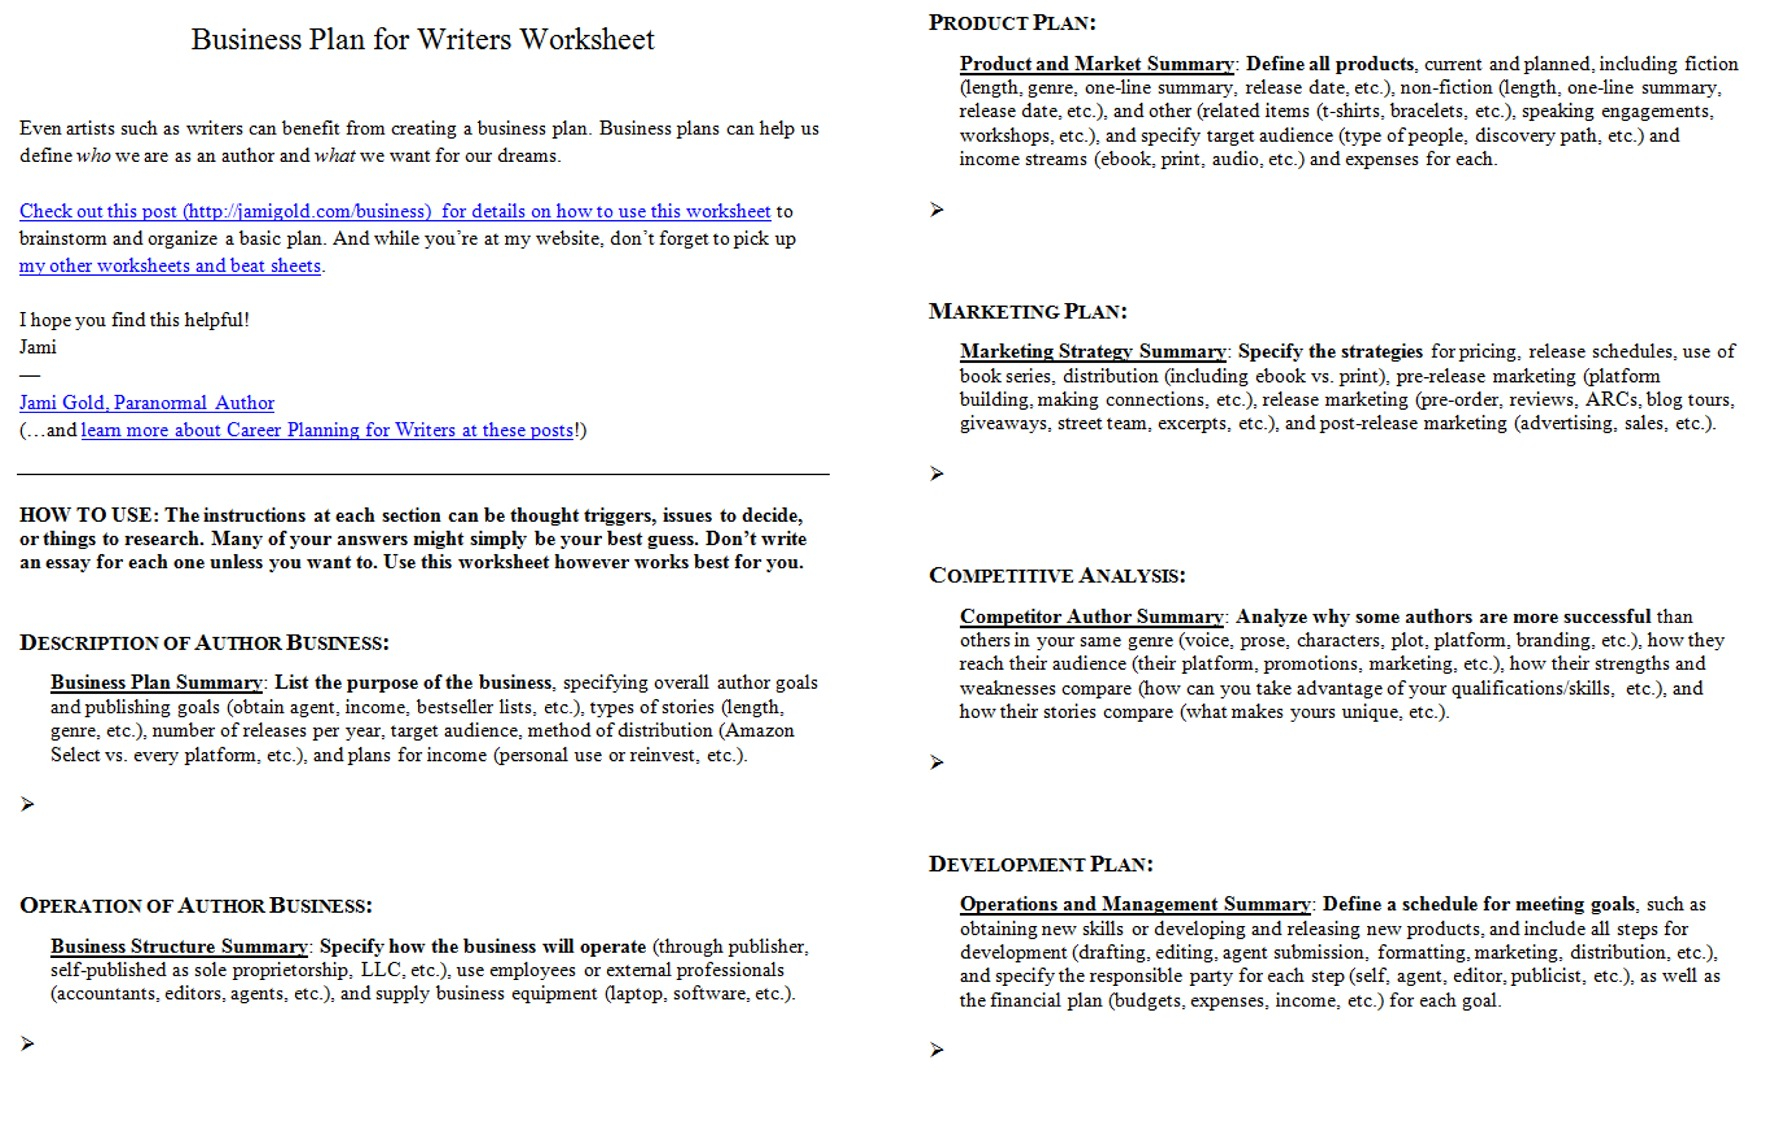 Weirdmailus  Stunning Worksheets For Writers  Jami Gold Paranormal Author With Goodlooking Screen Shot Of Both Pages Of The Business Plan For Writers Worksheet With Agreeable Cells Alive Worksheet Answers Also Chemistry Dimensional Analysis Worksheet In Addition  Dimensional Shapes Worksheets And Aa Step  Worksheet As Well As Line Of Best Fit Worksheet With Answers Additionally Sight Words Worksheet From Jamigoldcom With Weirdmailus  Goodlooking Worksheets For Writers  Jami Gold Paranormal Author With Agreeable Screen Shot Of Both Pages Of The Business Plan For Writers Worksheet And Stunning Cells Alive Worksheet Answers Also Chemistry Dimensional Analysis Worksheet In Addition  Dimensional Shapes Worksheets From Jamigoldcom